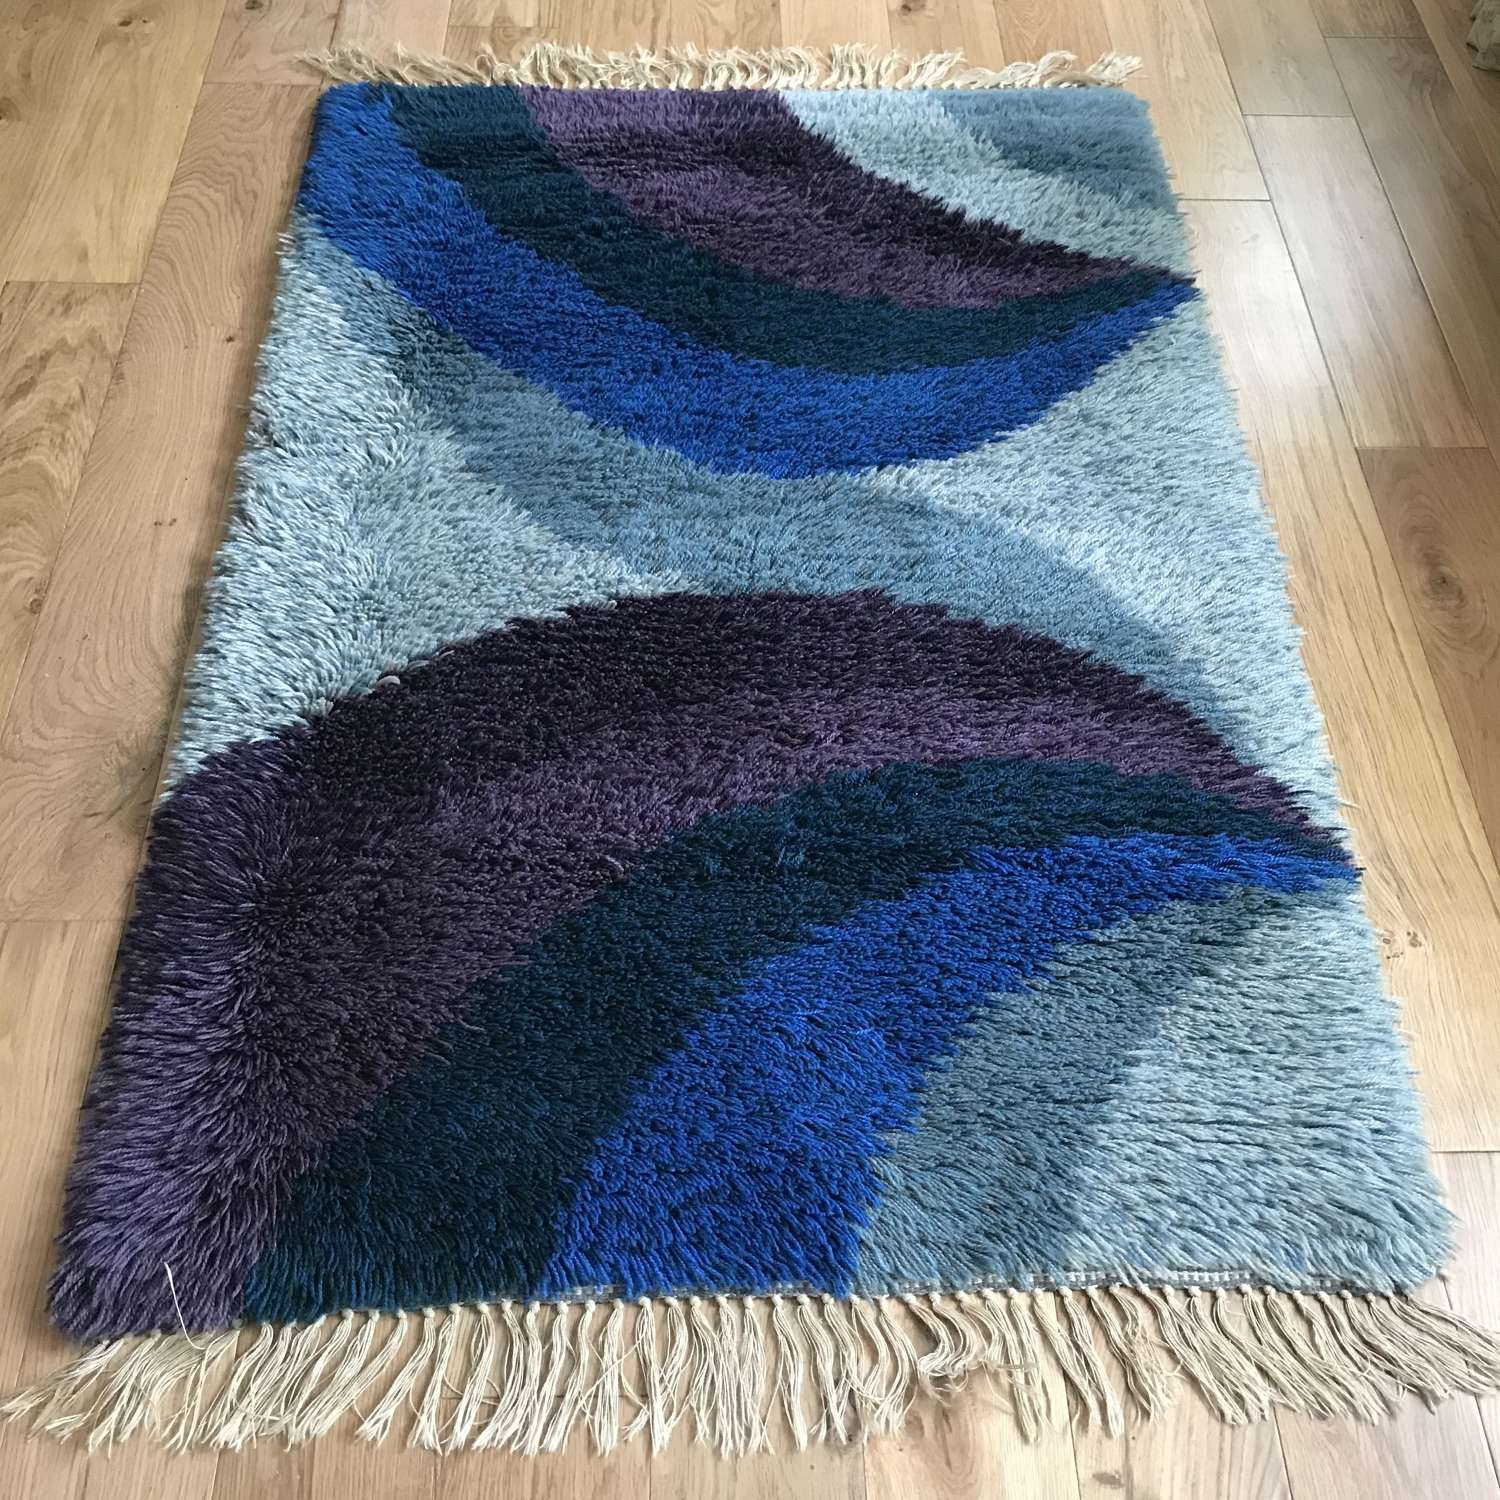 Swedish rya rug, blue and purple, c 1970s